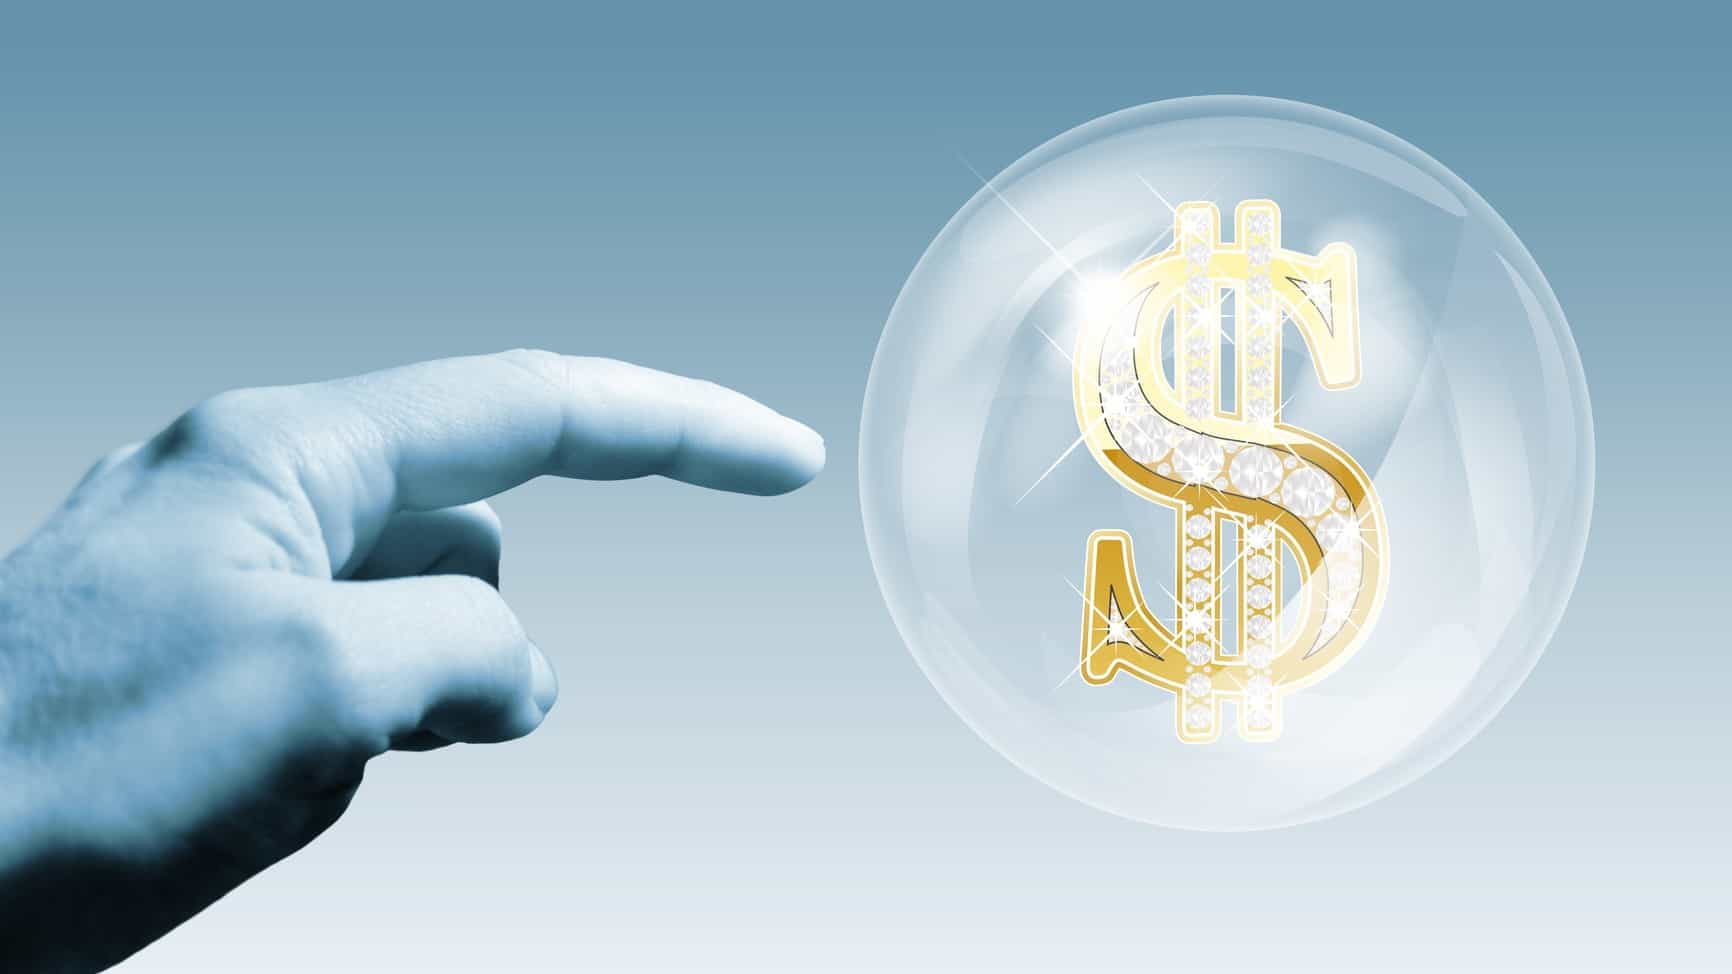 hand about to burst bubble containing dollar sign, asx shares, over valued